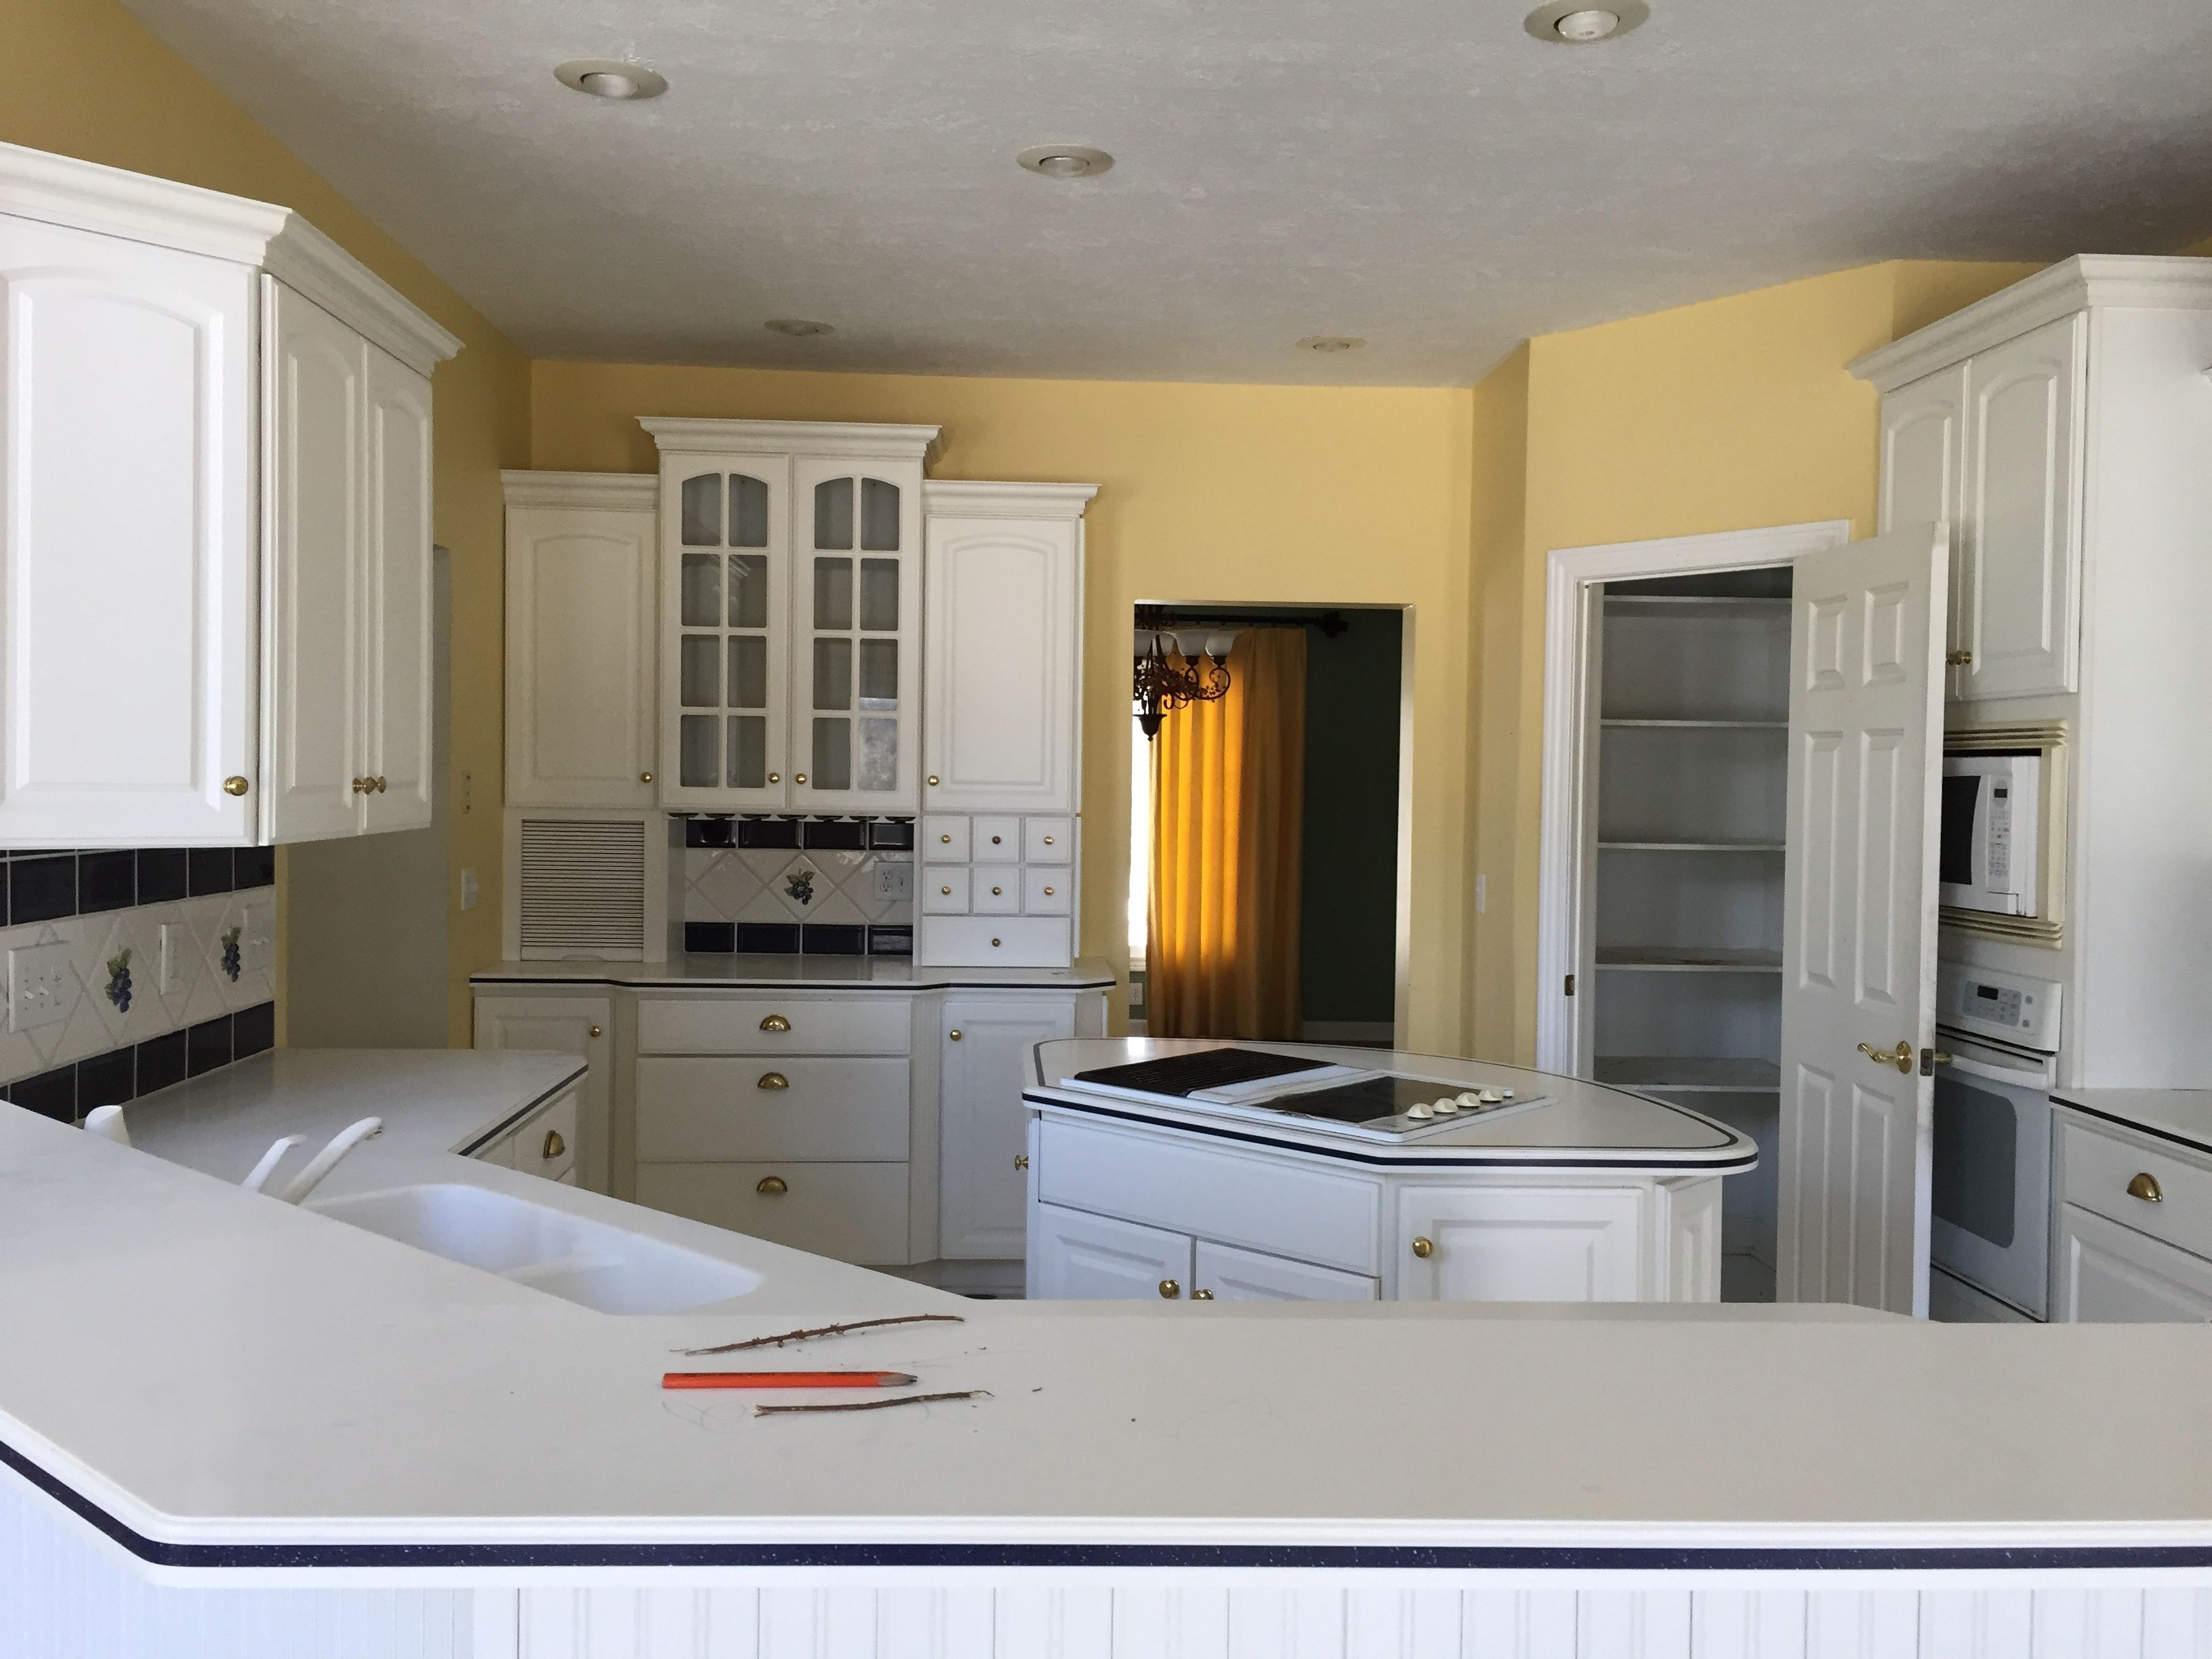 Cabinet Painting Cabinet Refinishing Services In Lansing Michigan Painting Kitchen Cabinets Kitchen Cabinets Cost Of Kitchen Cabinets